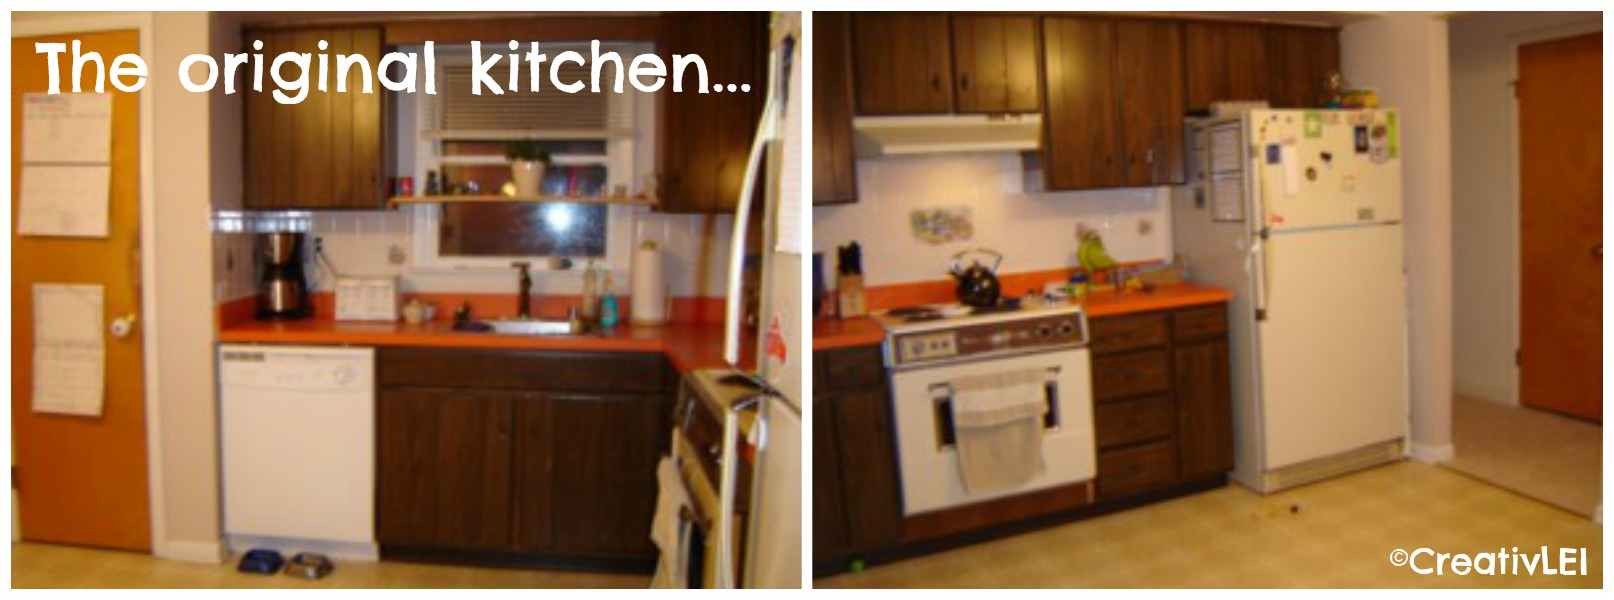 operation new kitchen diy remodel diy kitchen remodel original kitchen